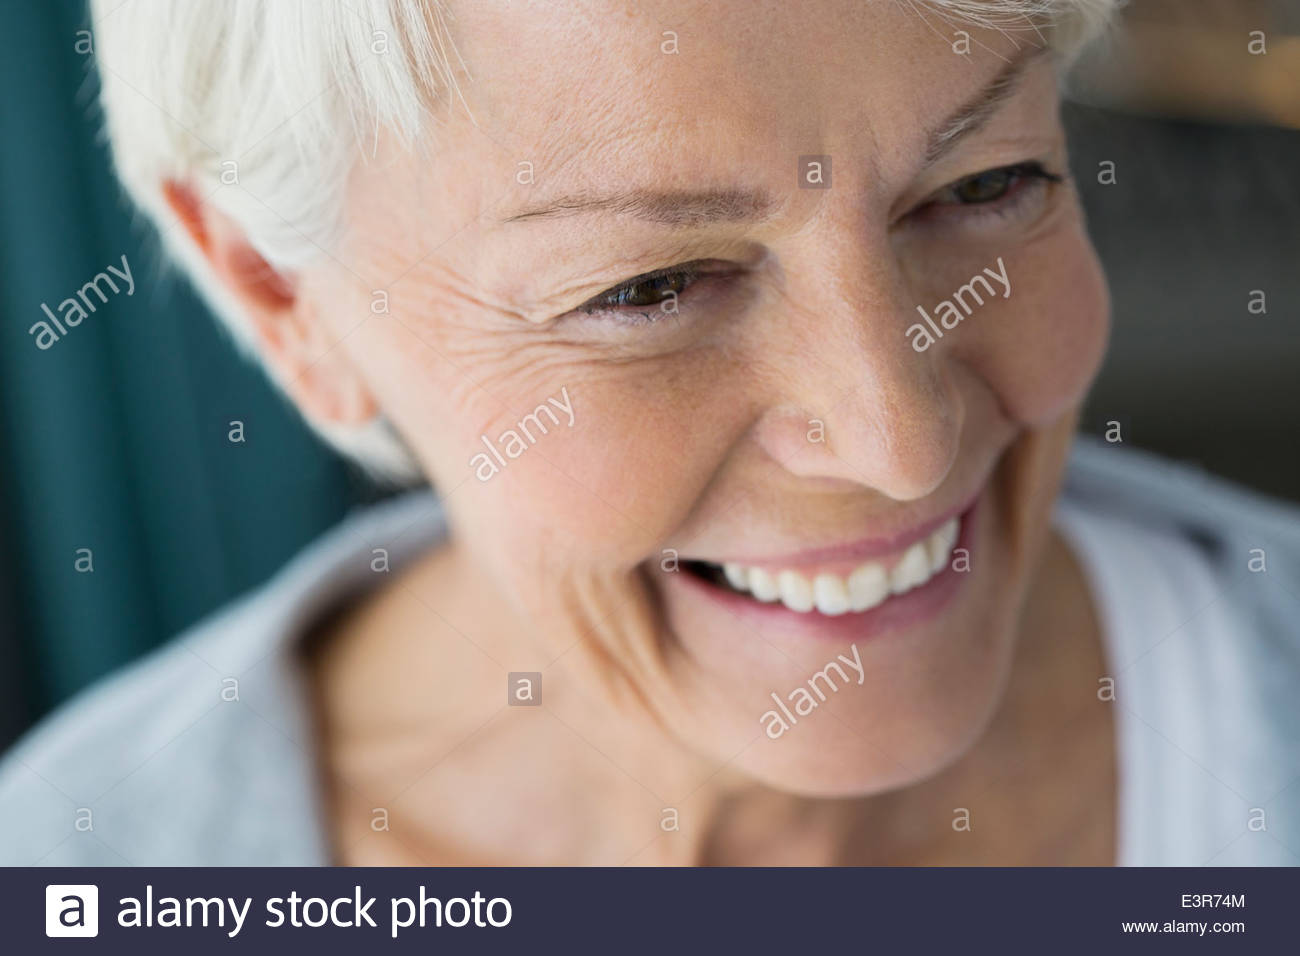 Close up of smiling woman - Stock Image